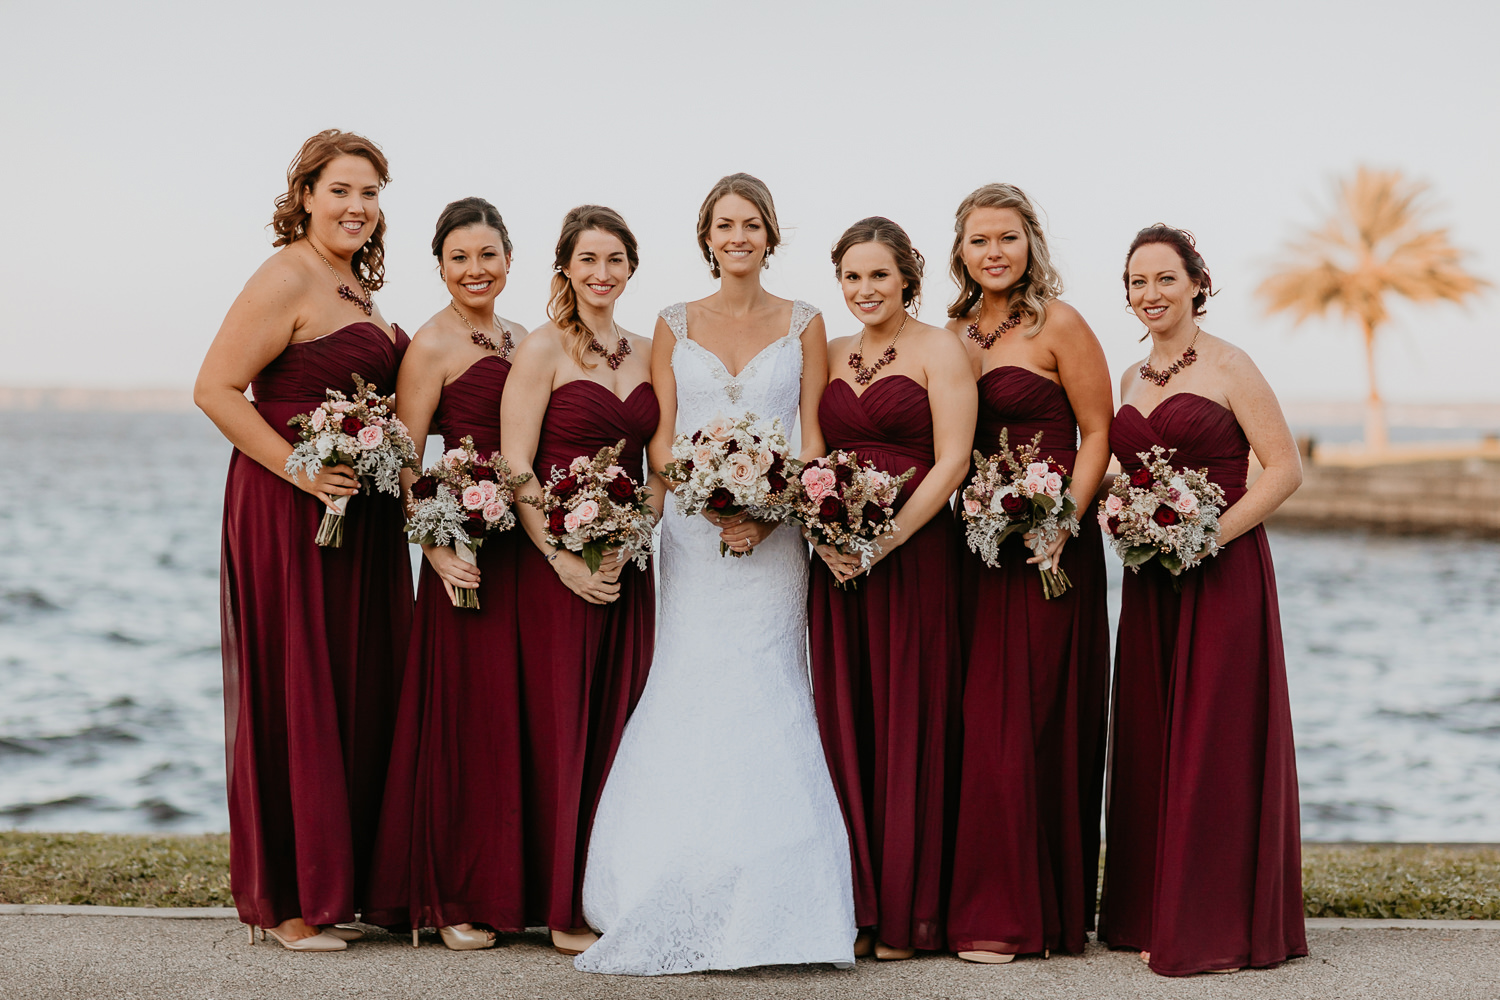 bridesmaids lined up smiling at camera holding bouquets